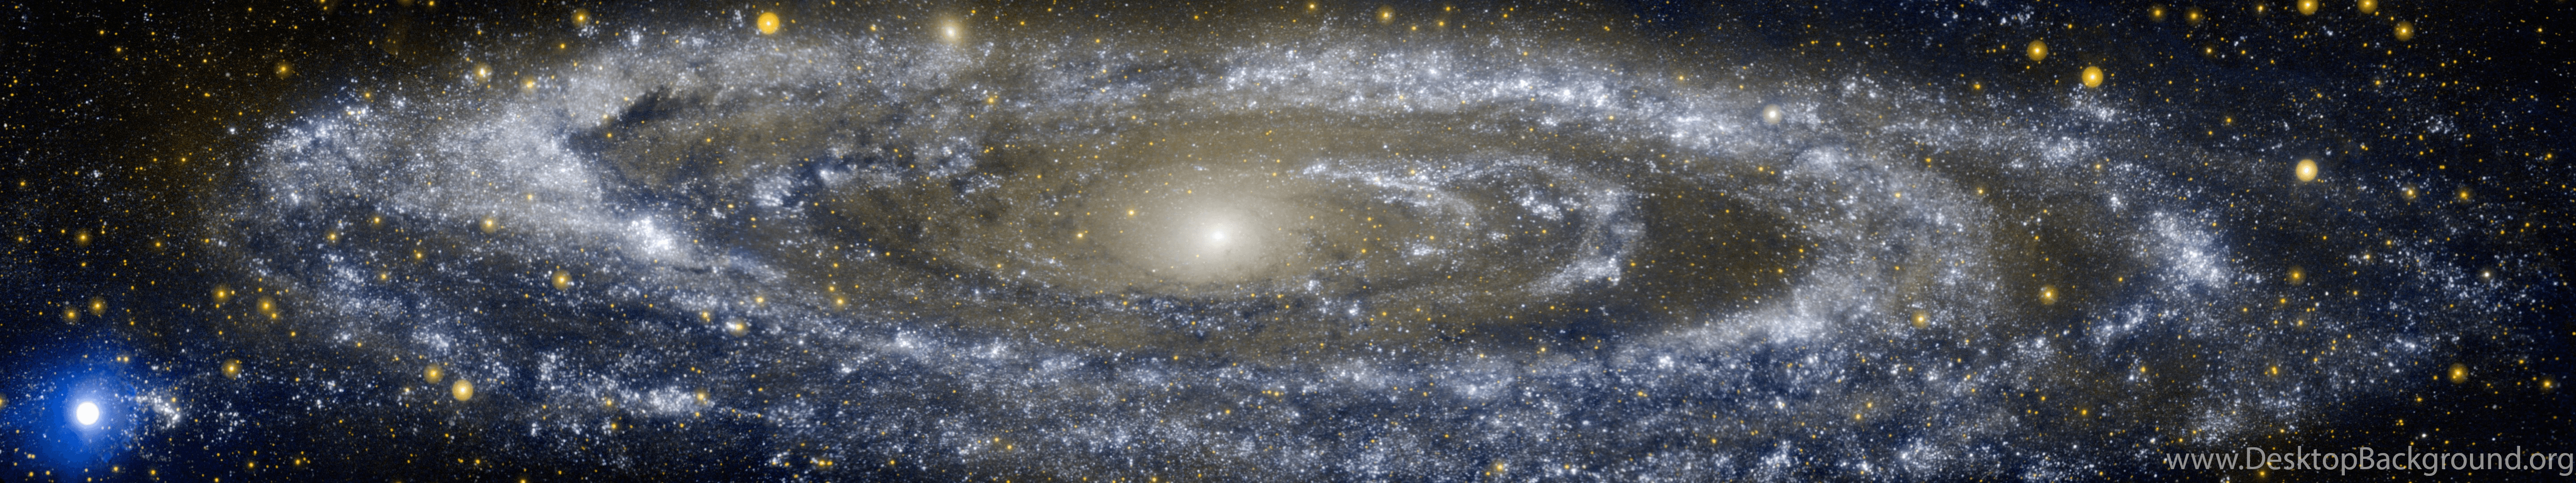 5760x1080 Andromeda Triple Monitor Wallpapers By TomThaiTom On DeviantArt ...